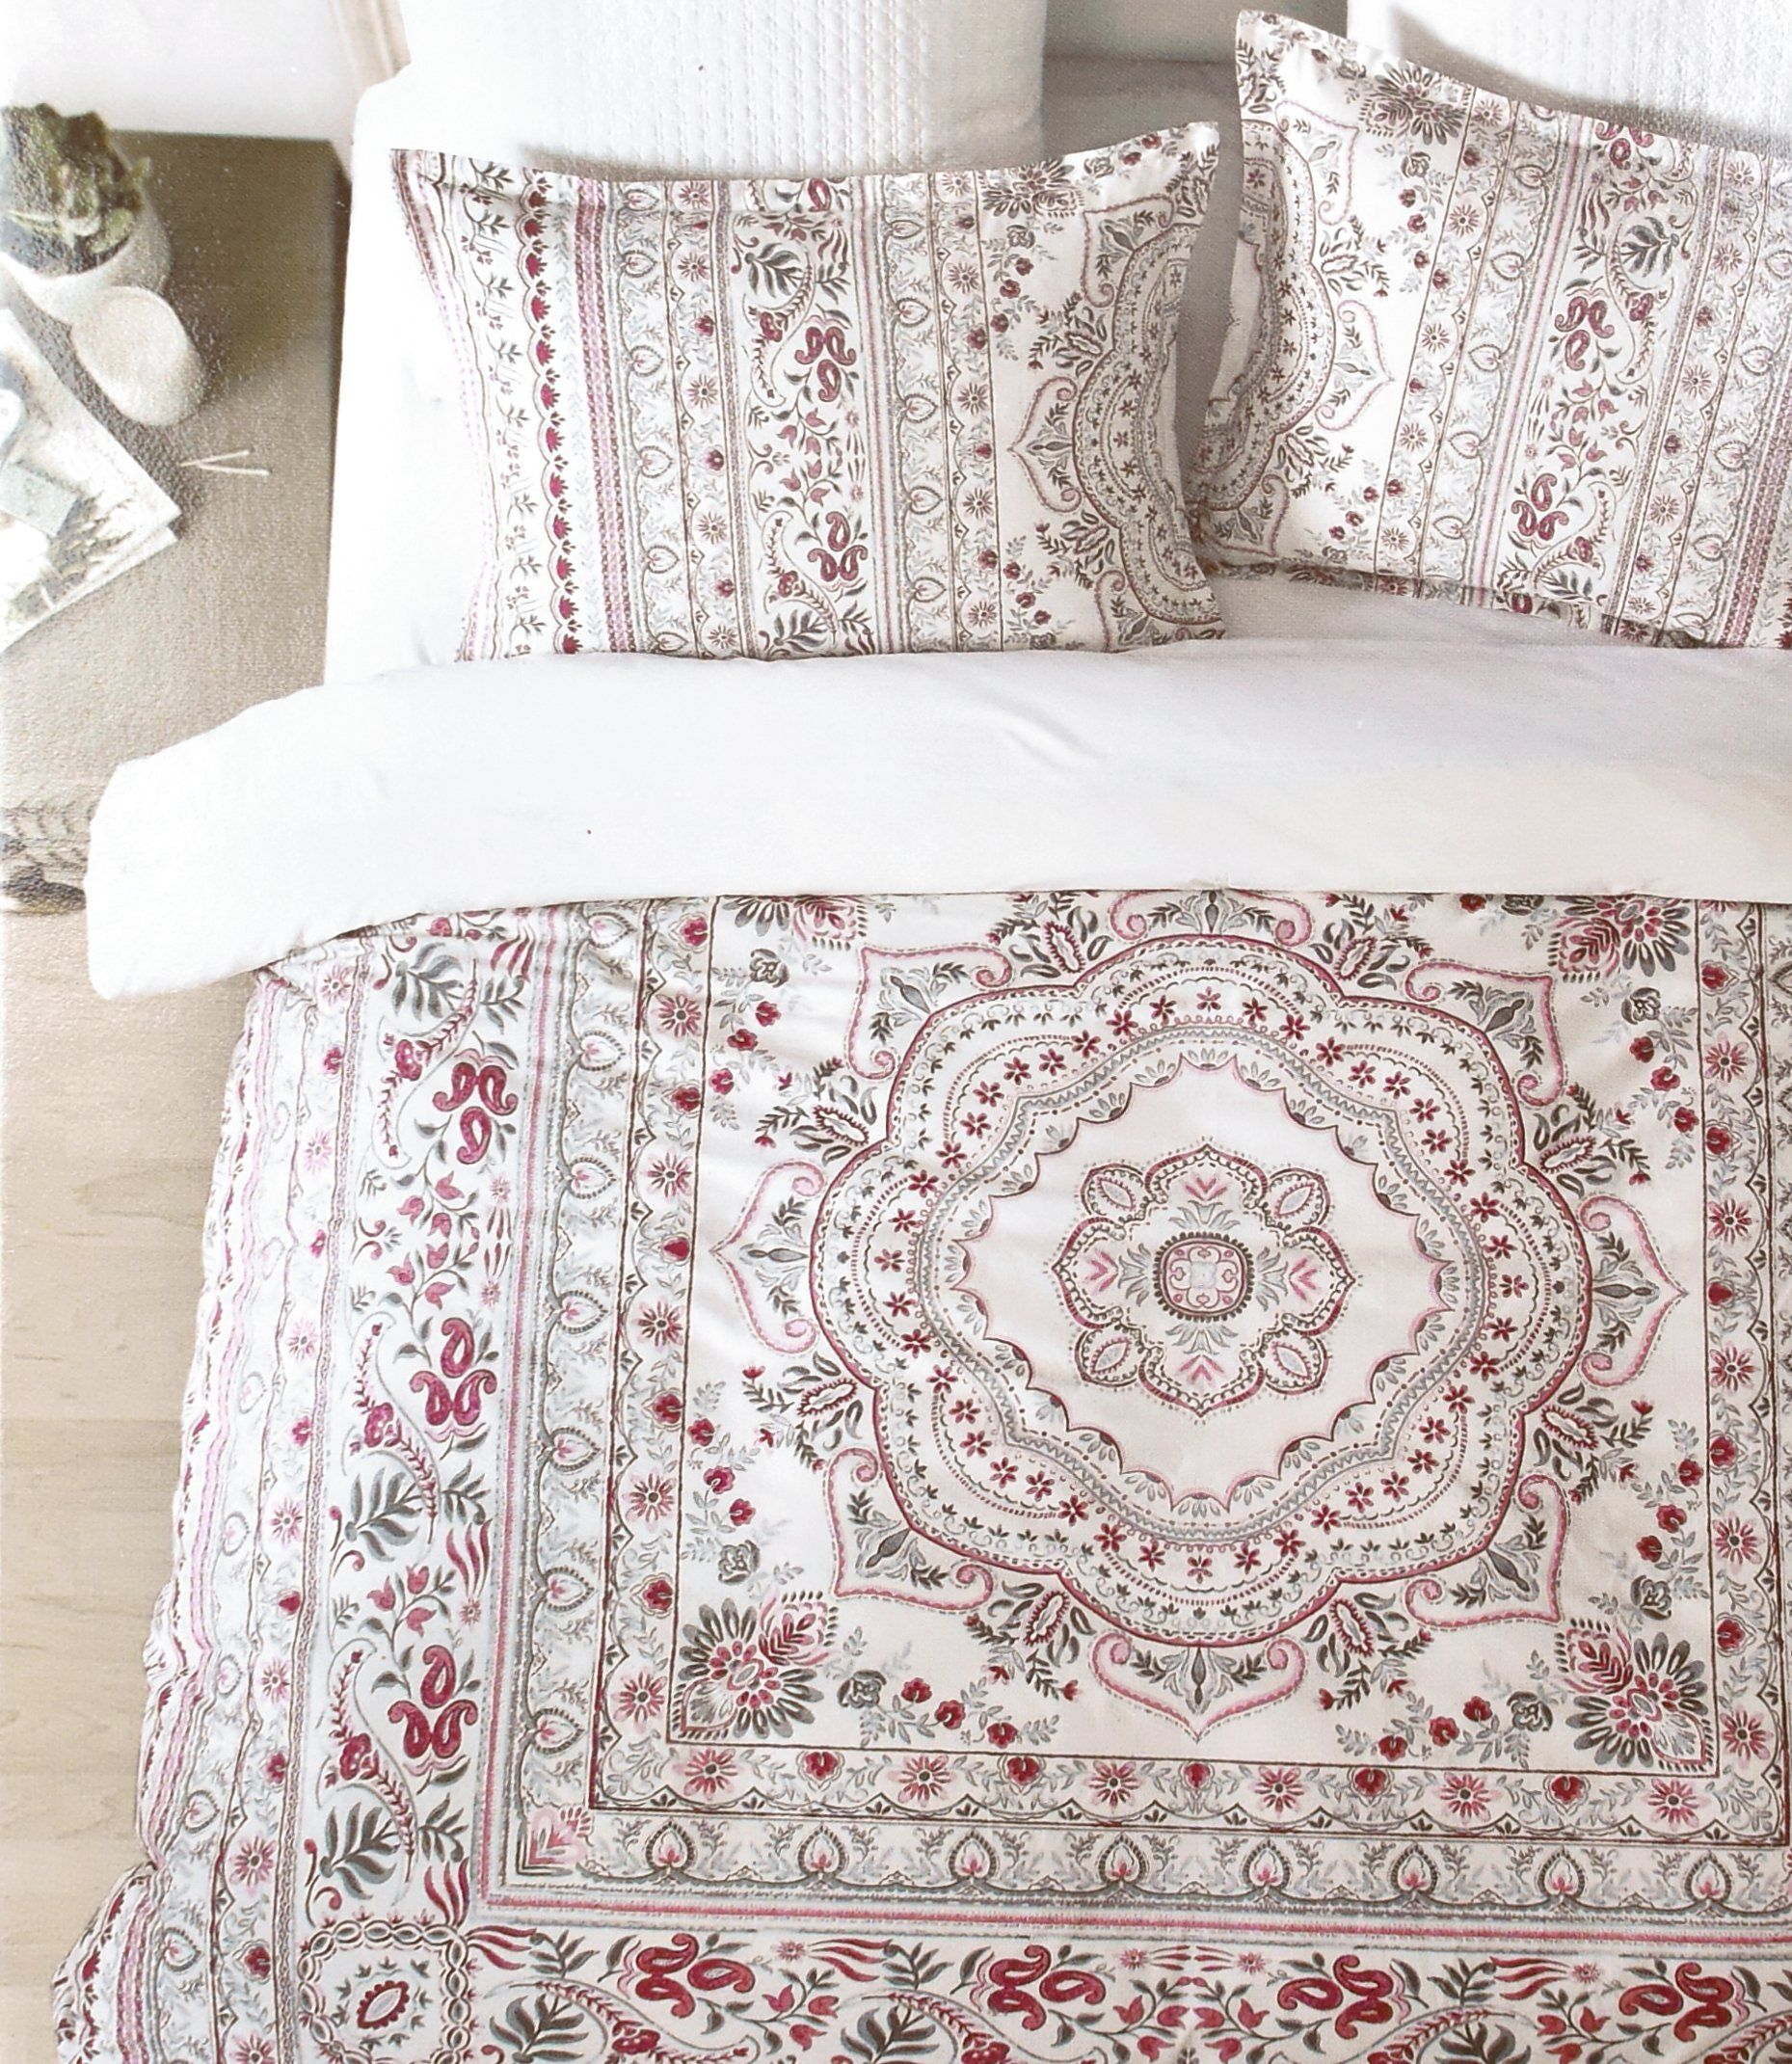 covers duvet shipping azalea nights product moroccan skye free bedding cover overstock over set on bath orders